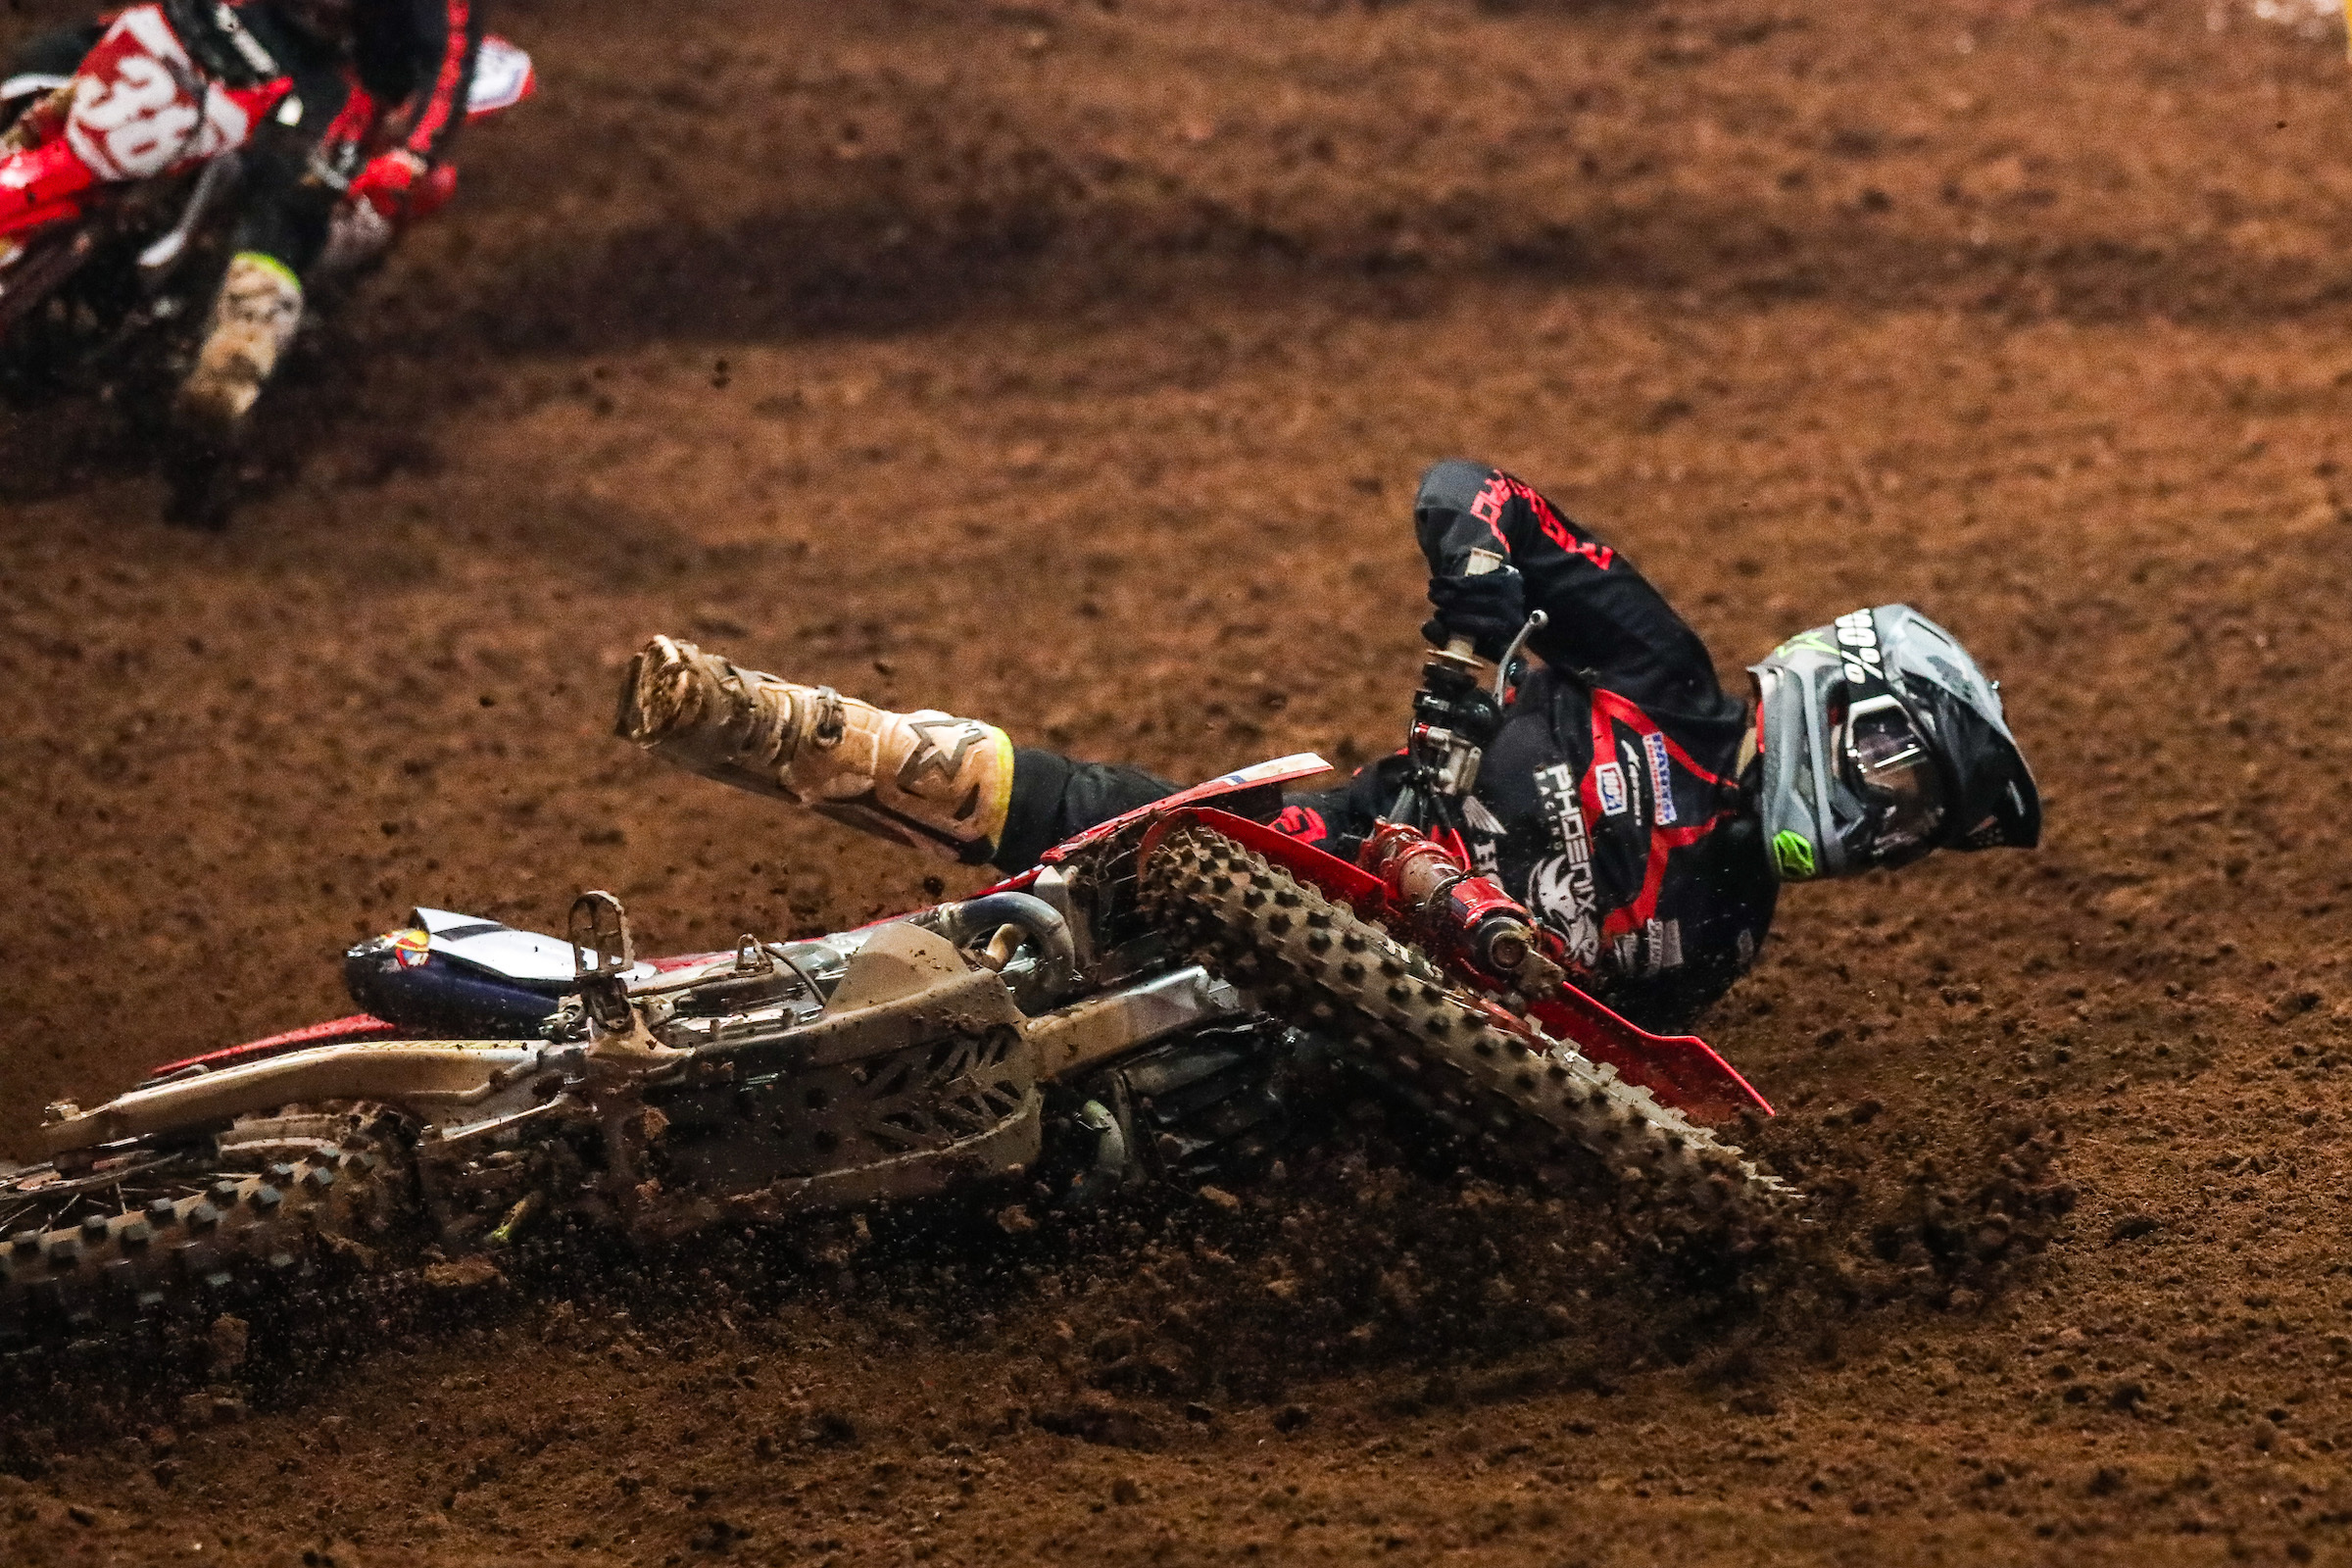 Phoenix Racing Honda Team Rider, Jace Owen, loses the lead in the 450 Pro Main on Saturday night after going down on the track. (Photo- Jack Jaxson)